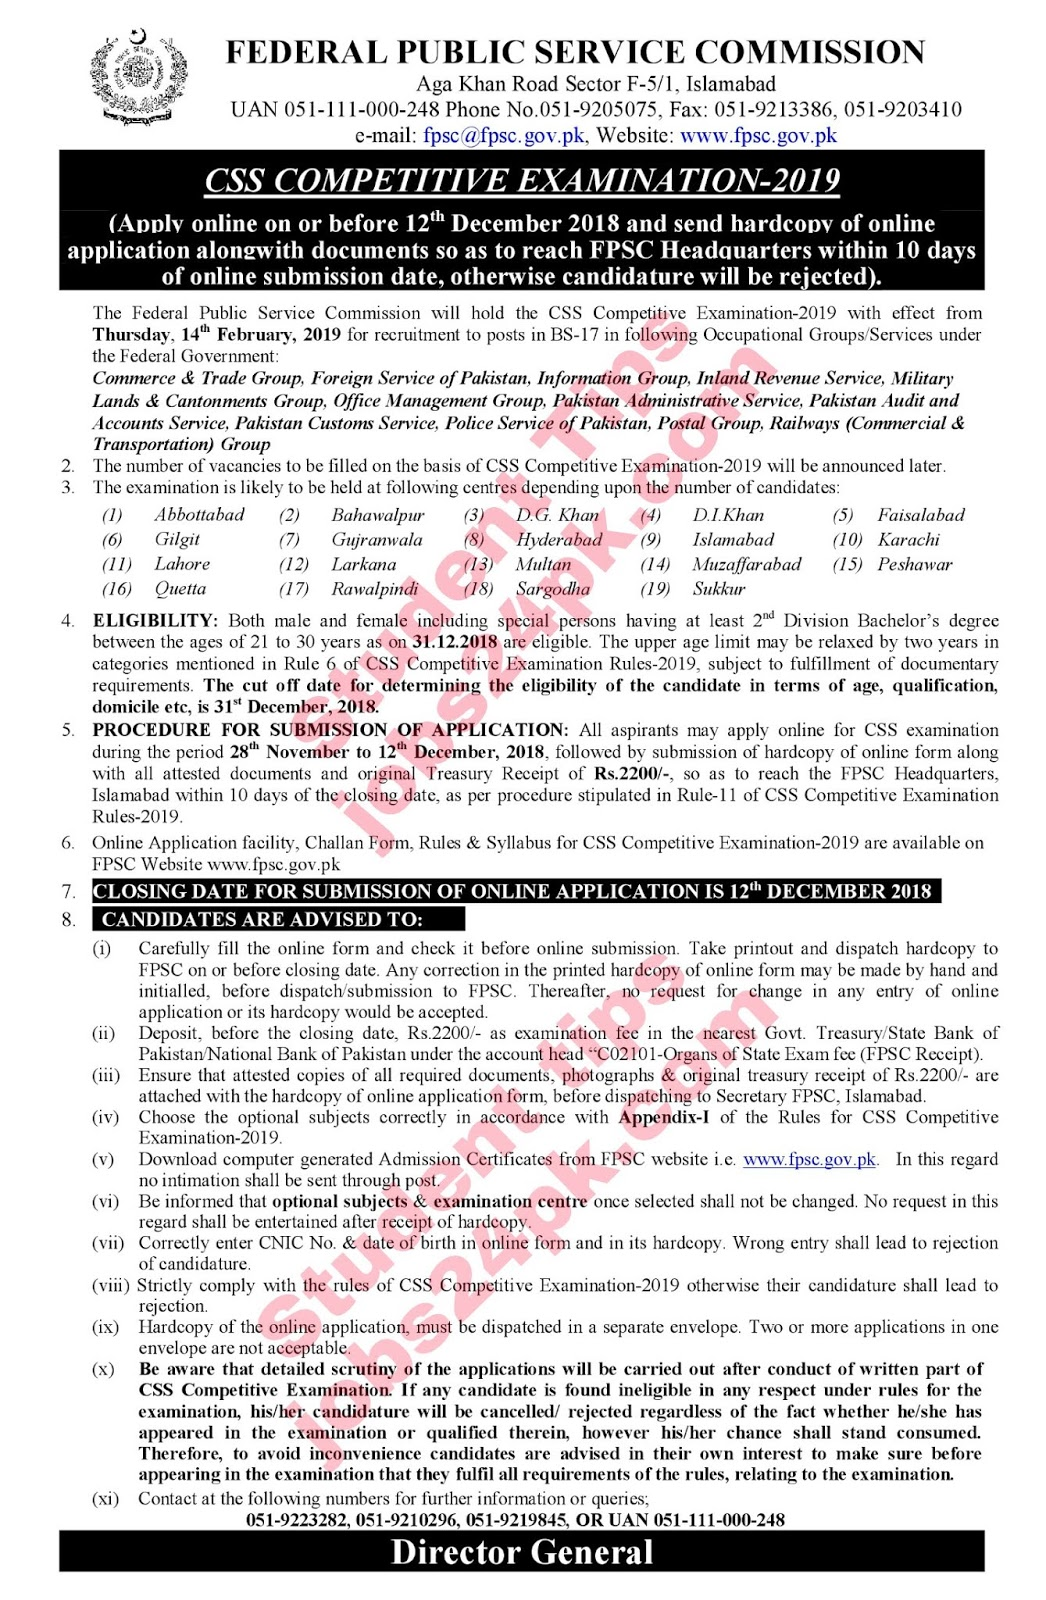 FPSC CSS 2019 Competitive Examination by Federal Public Service Commission Apply Latest Advertisement